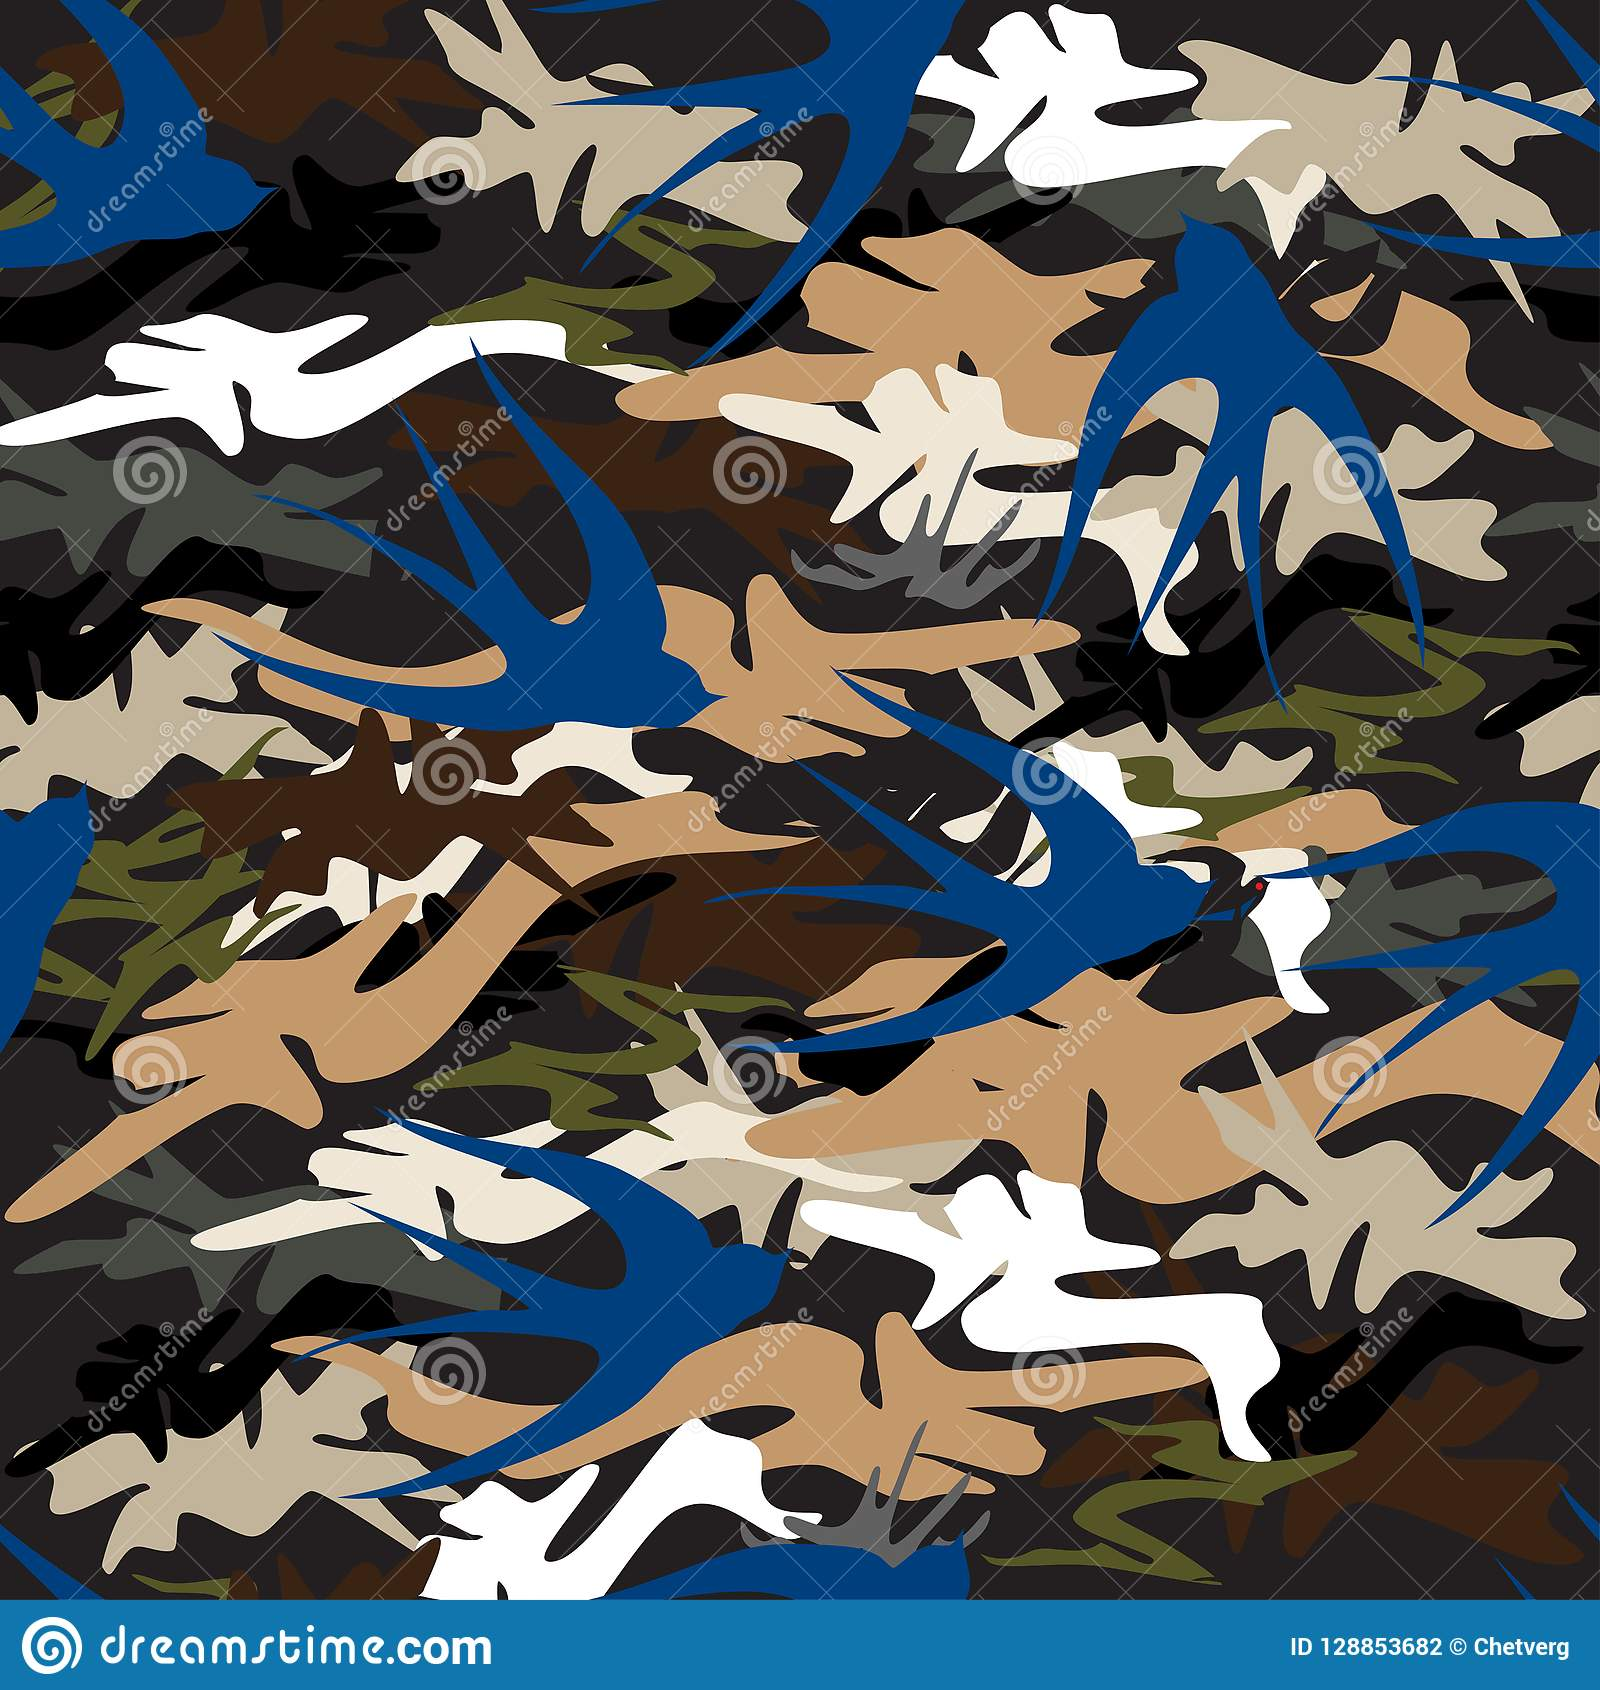 Flying blue swallow on the background of the camouflage seamless pattern.